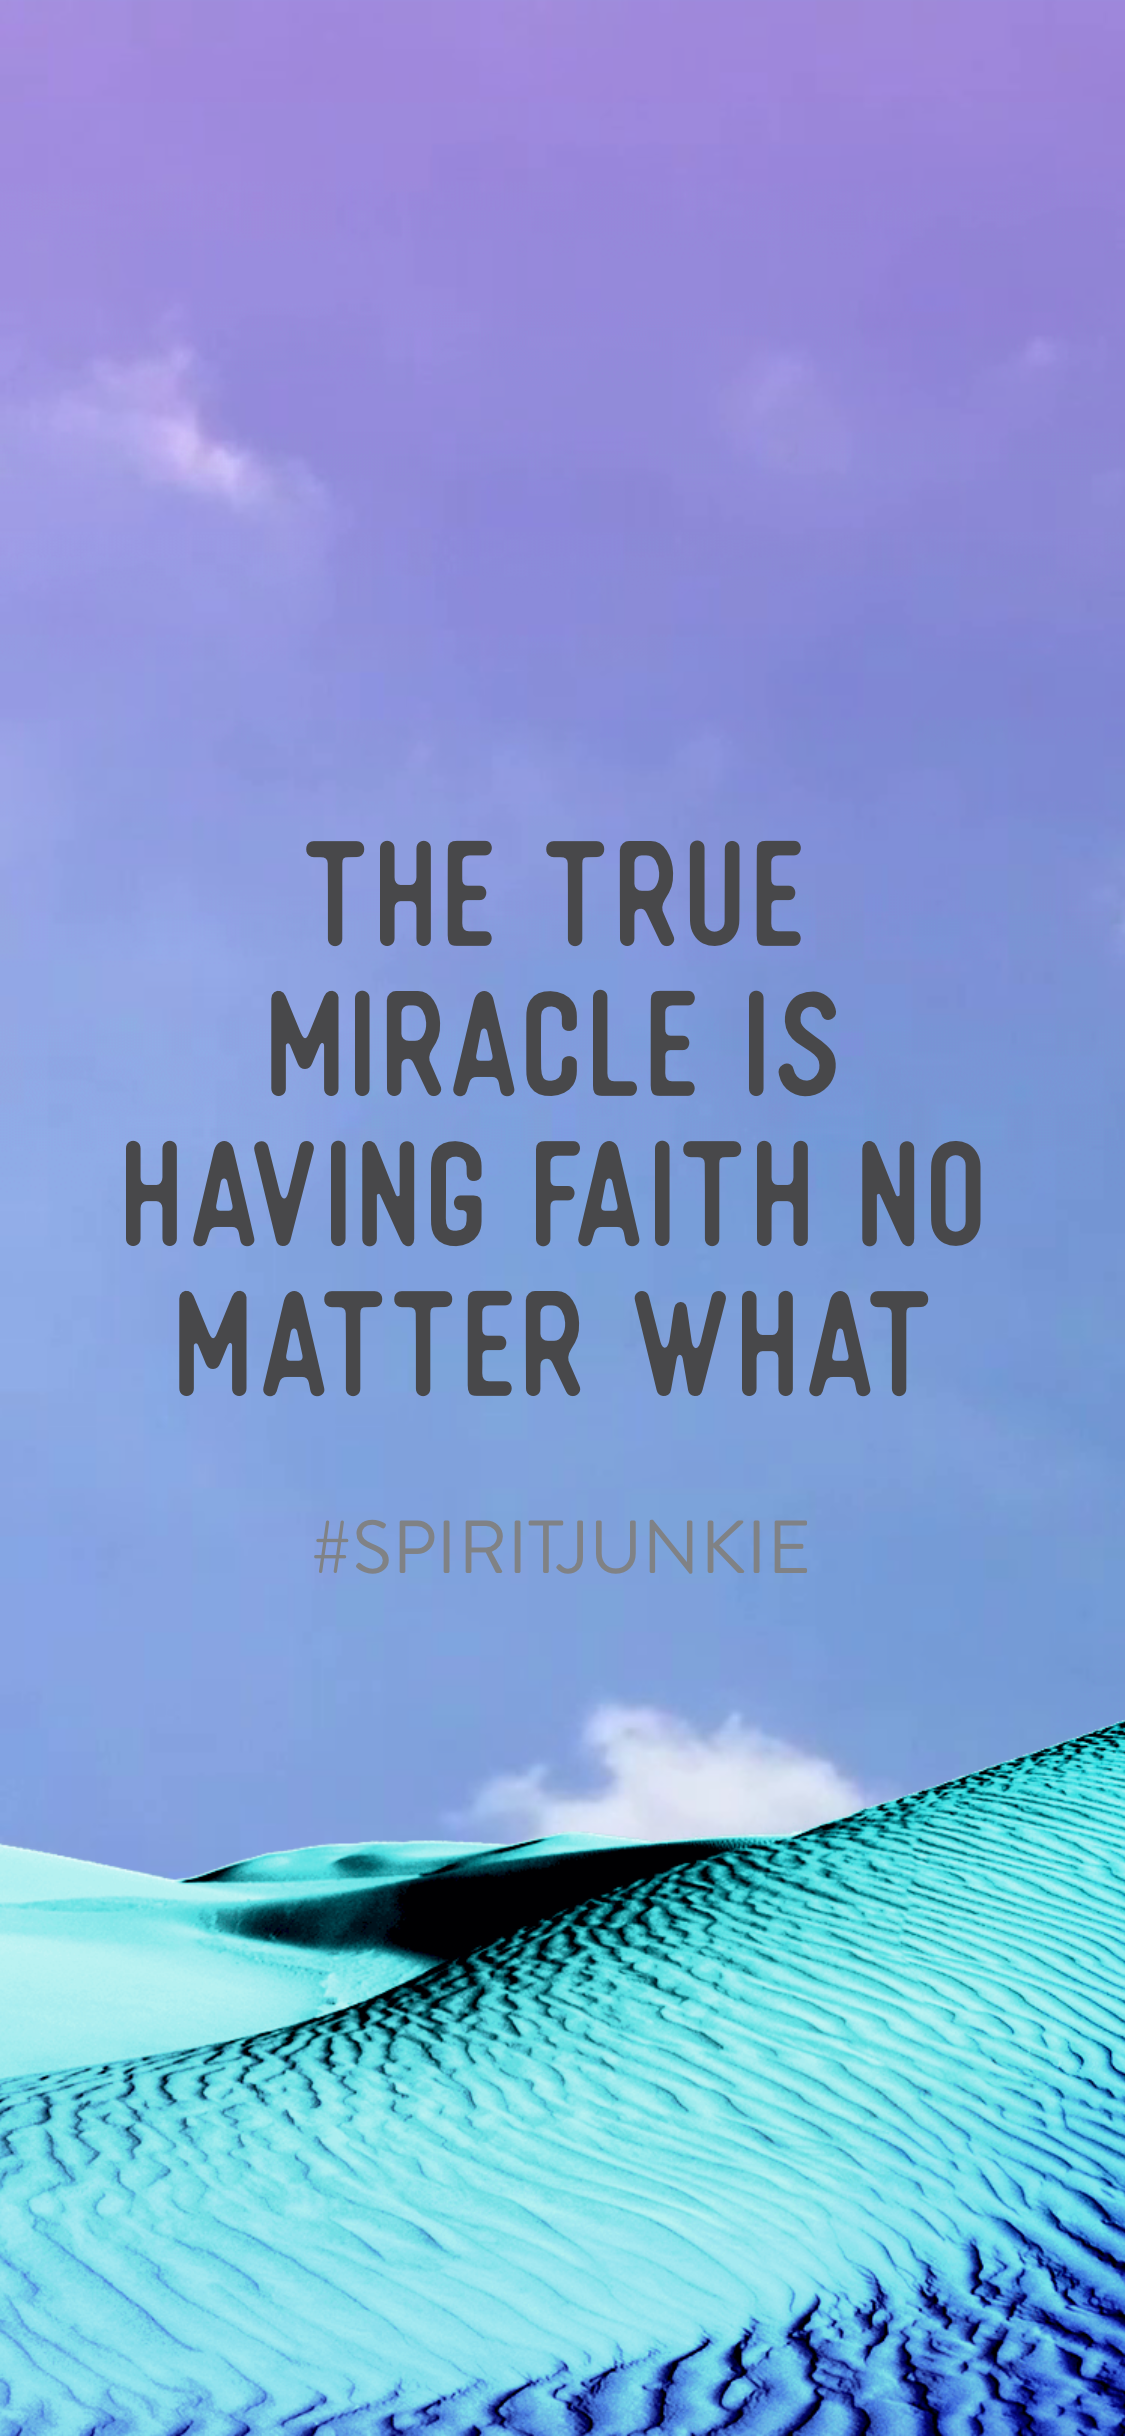 The true miracle is having faith no matter what | You are guided